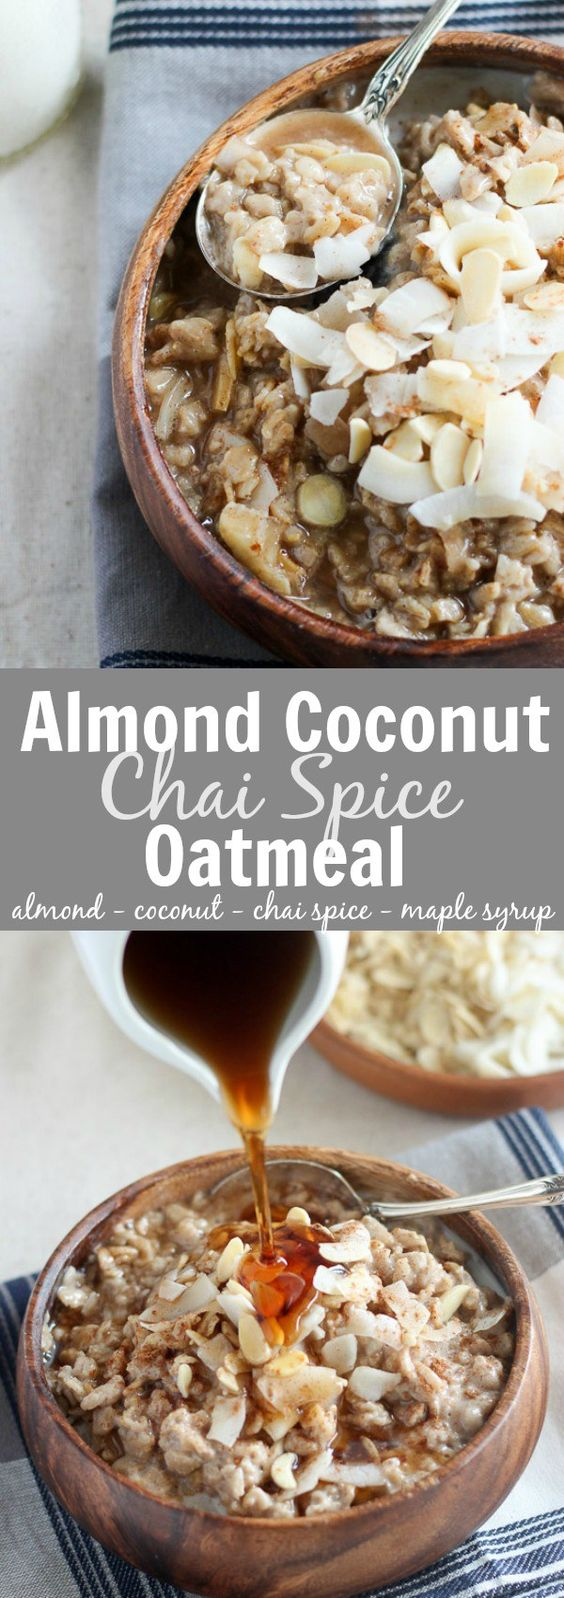 Almond Coconut Chai Spice Oatmeal - Creamy oatmeal made with almond-coconut milk, flavored with maple syrup and chai spice and topped with toasted coconut chips and sliced almonds.